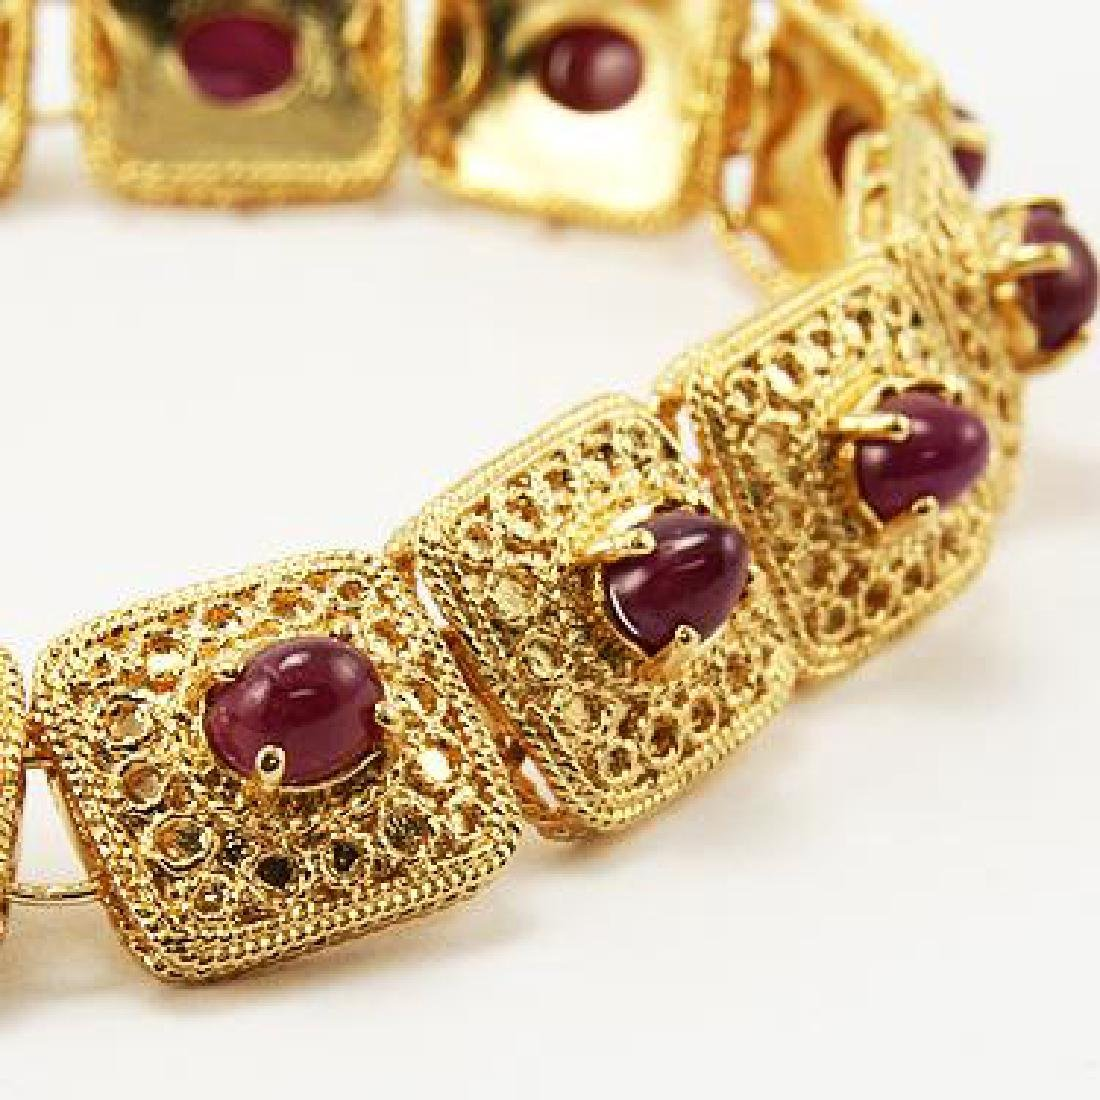 7 CT Cabochon Ruby Gold Bracelet